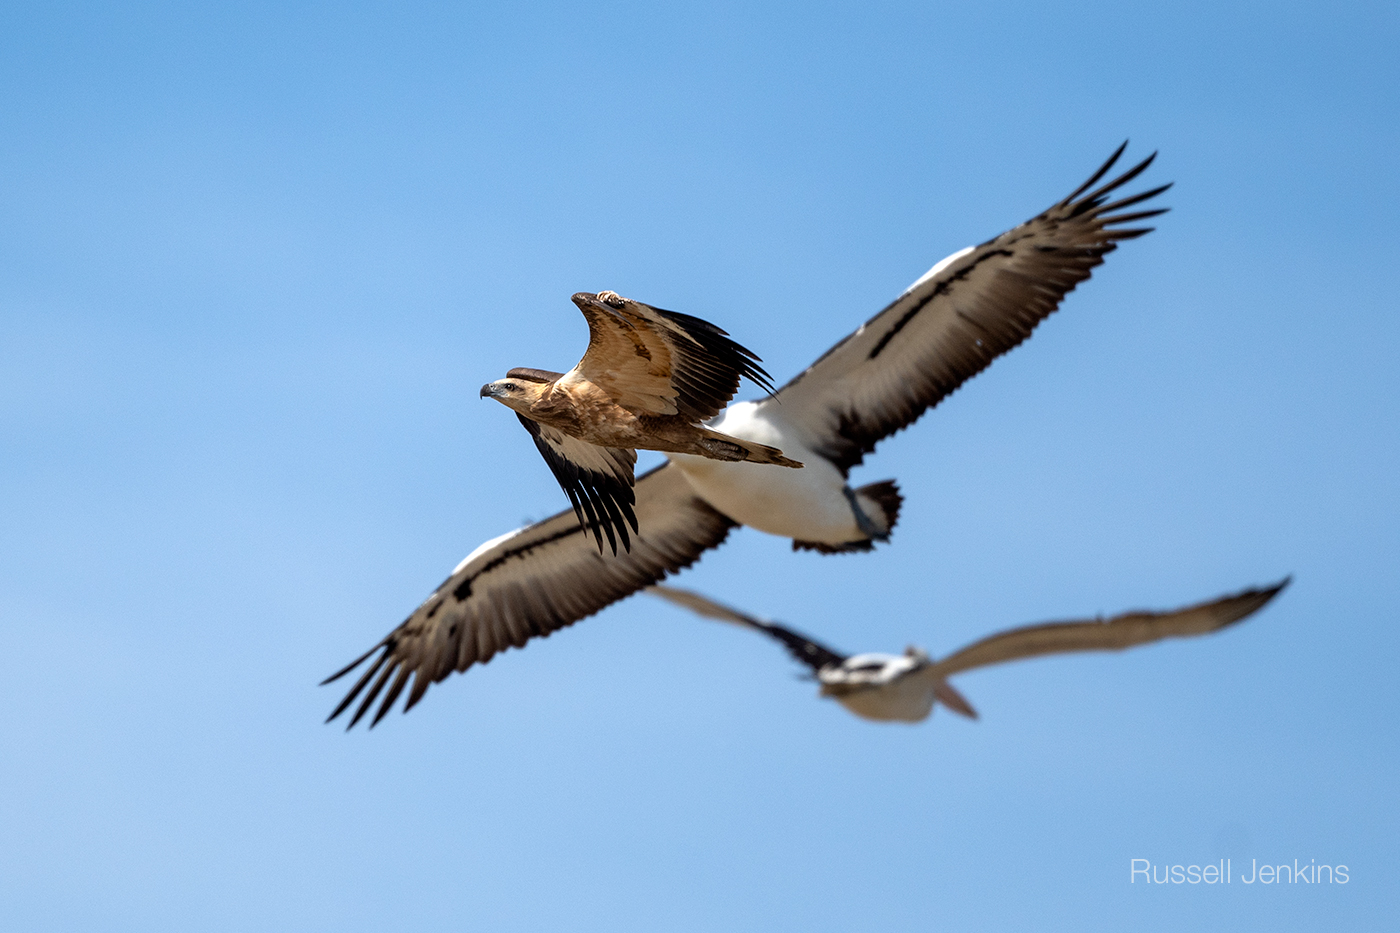 A Sea-eagle and two pelicans